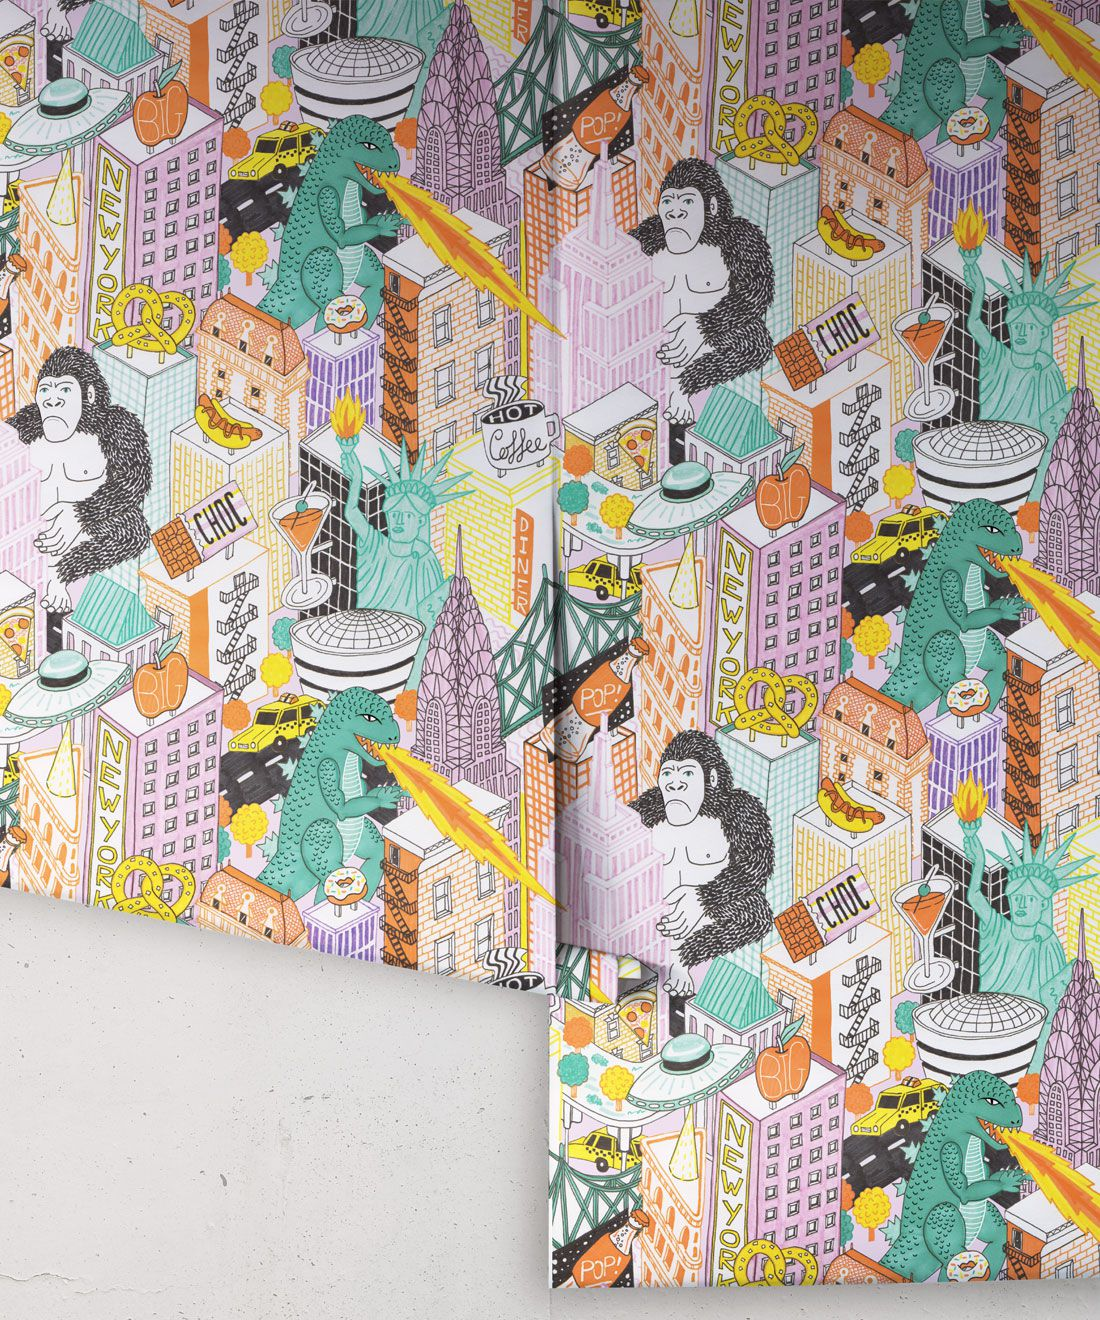 New York Wallpaper by Jacqueline Colley featuring Godzilla, King Kong, a UFO, buildings and the statue of liberty rolls